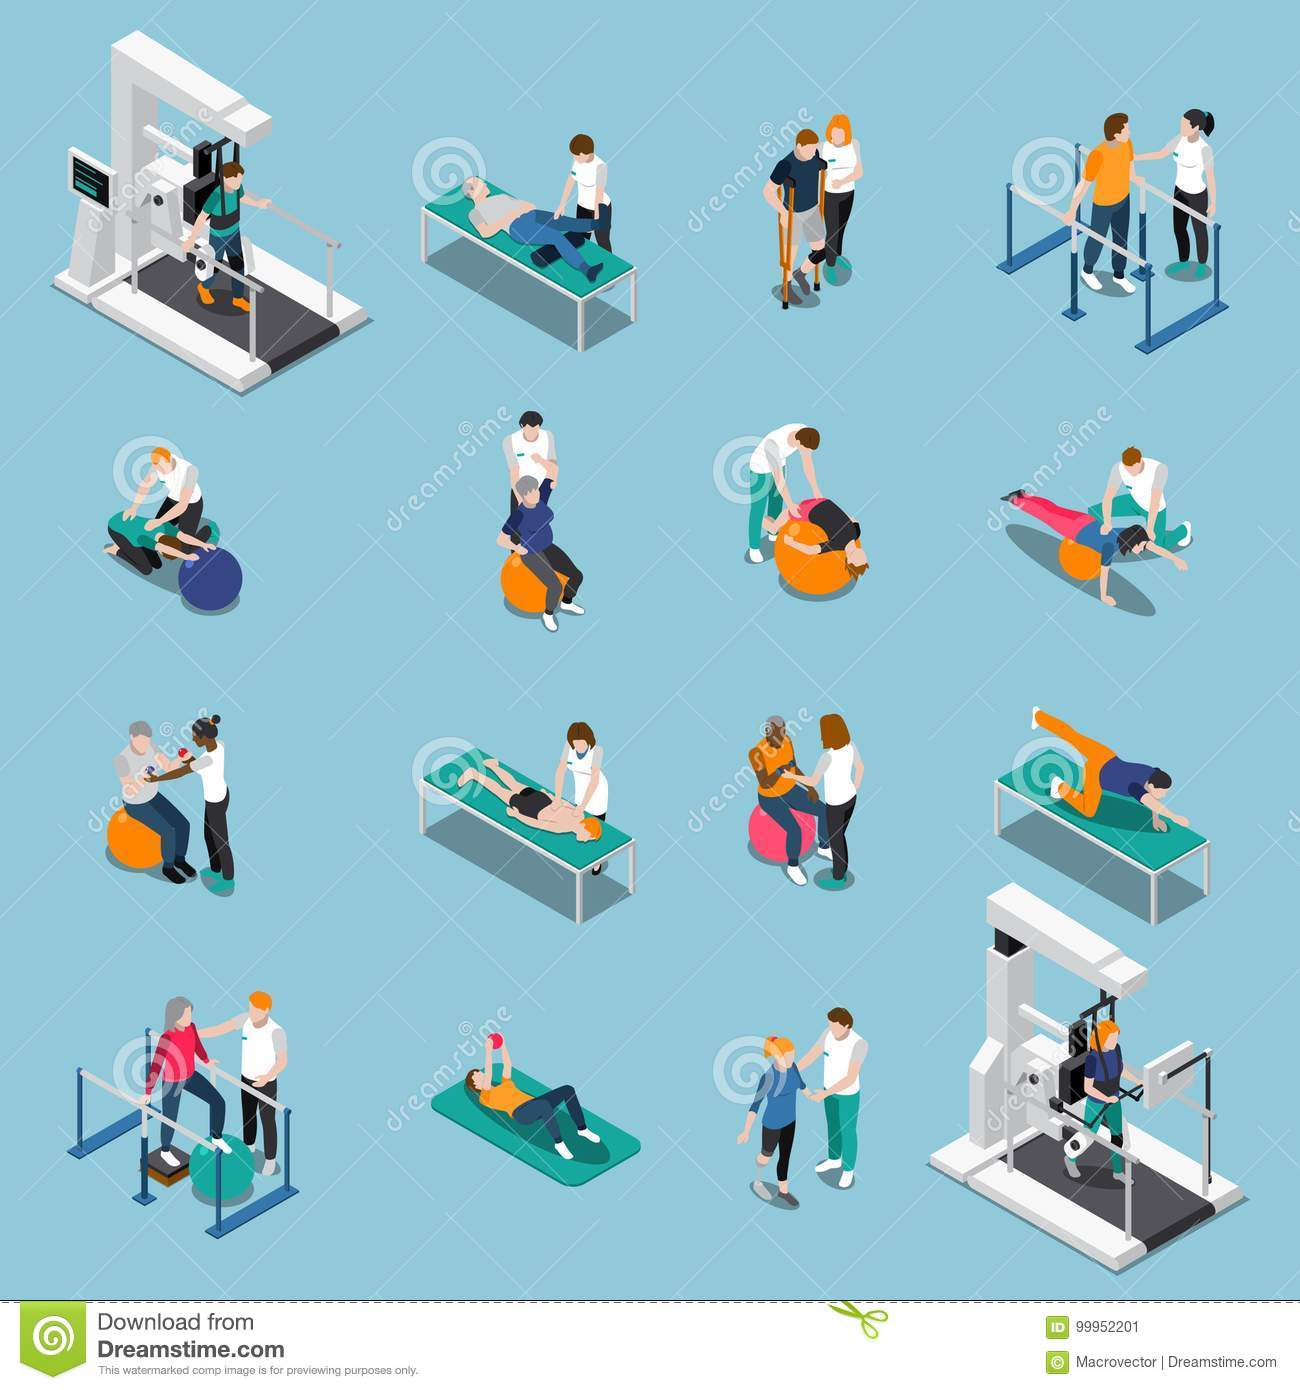 Isometric Exercises Equipment: Rehabilitation Cartoons, Illustrations & Vector Stock